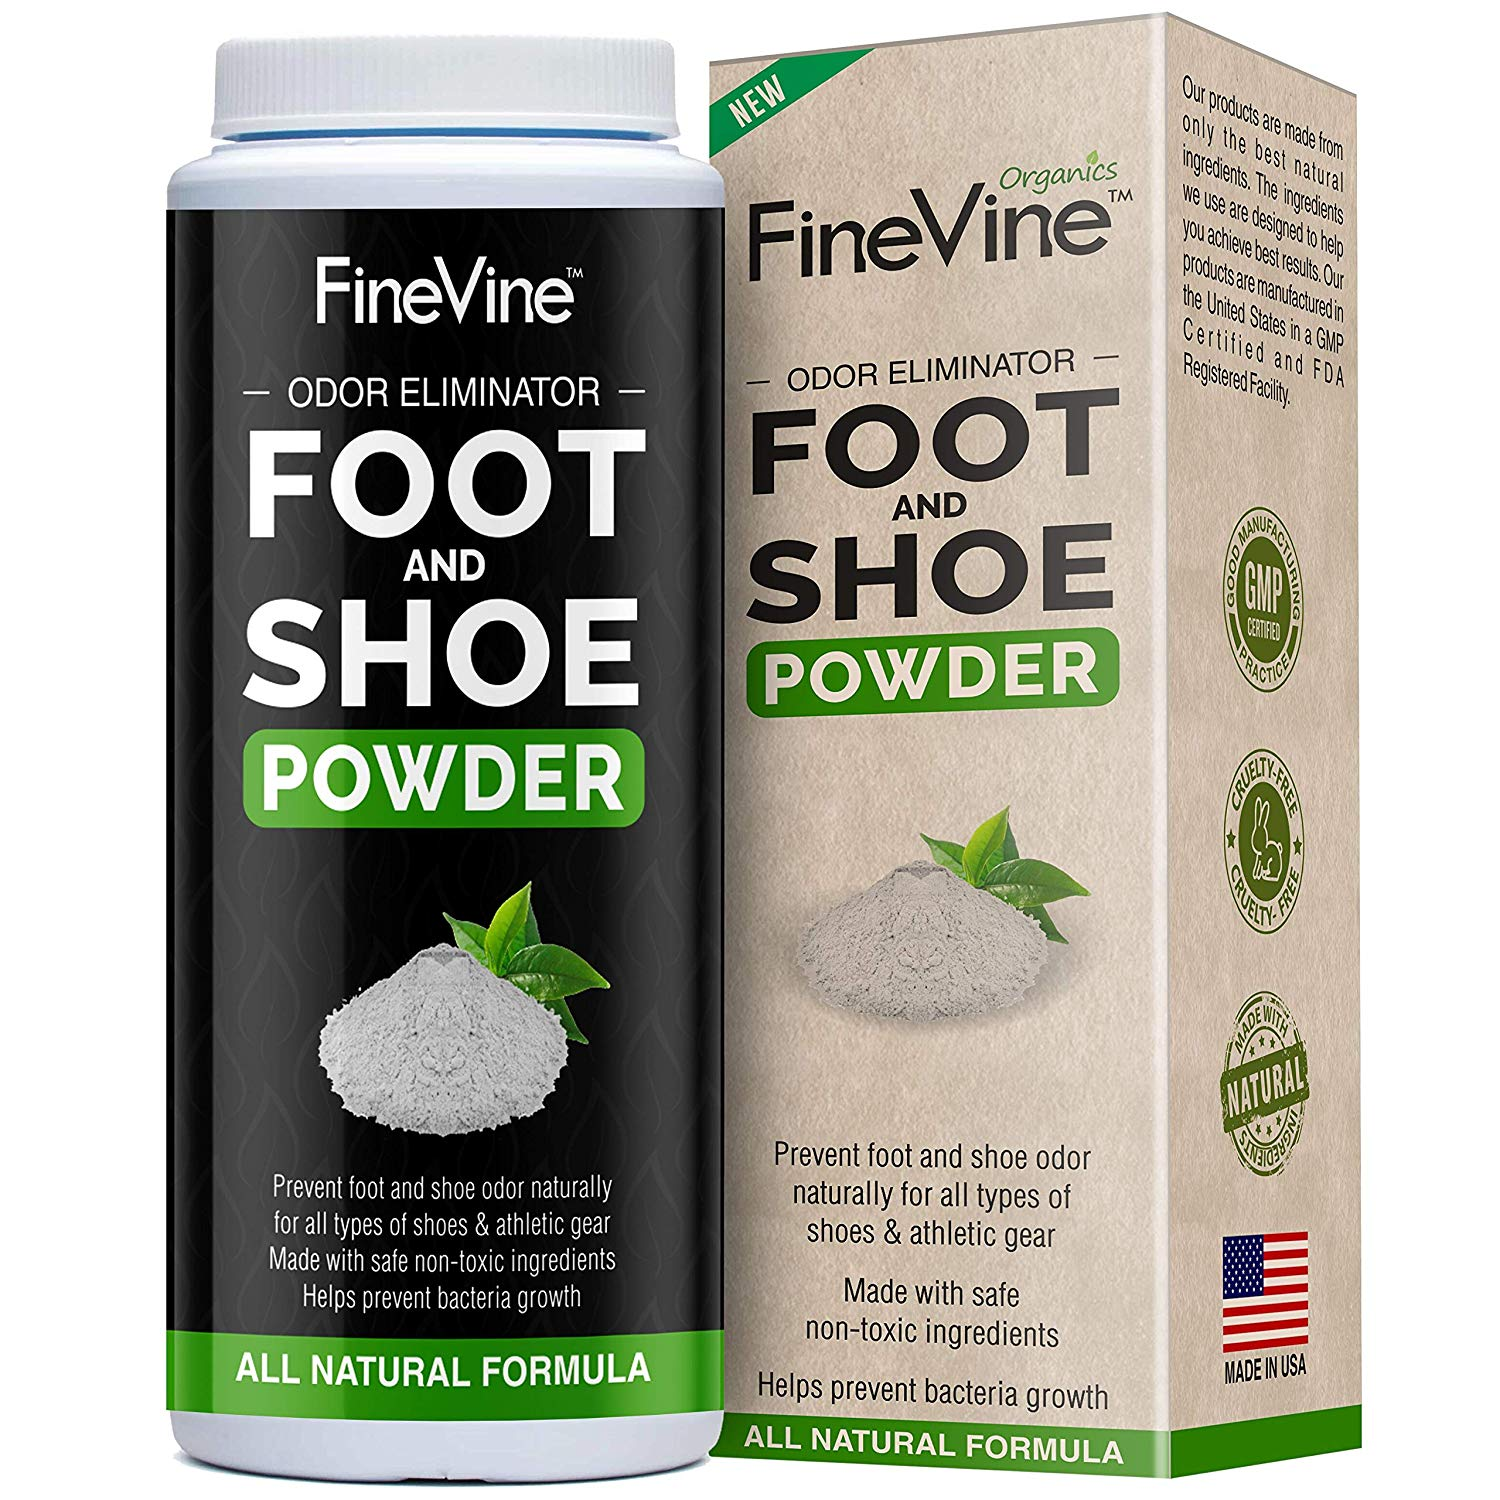 FineVine Foot and Shoe Powder